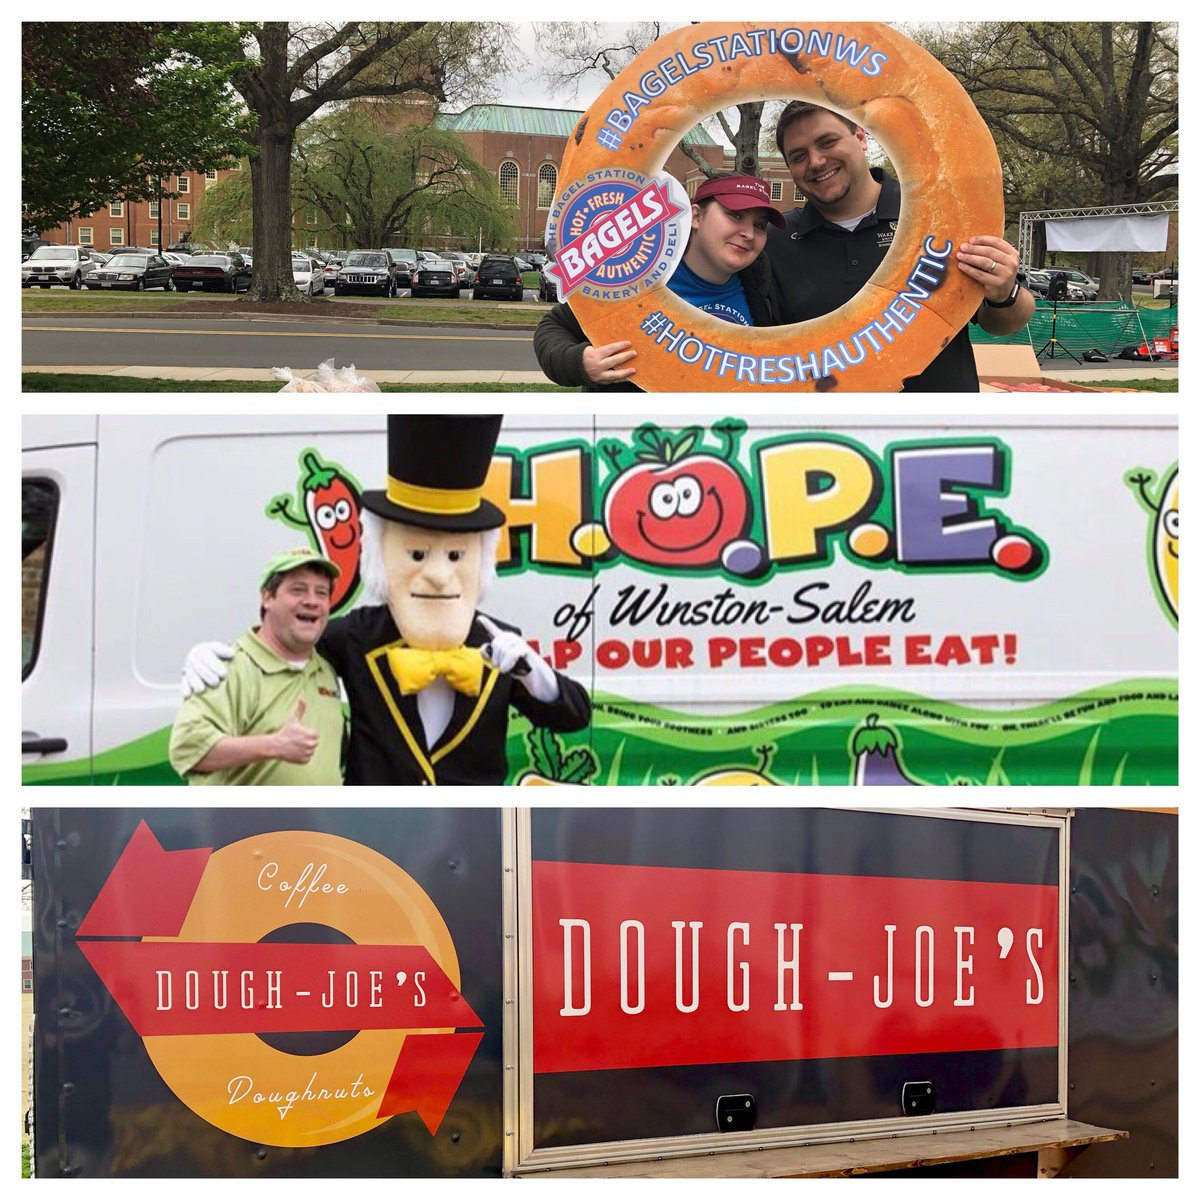 What a great morning on campus at @WakeForest.  Many thanks to the student leaders, participants, volunteers, and local community & @WFUAlumni partners who made it happen! @BagelStation @Hope_WS @DoughJoesNC @WakeForestBiz